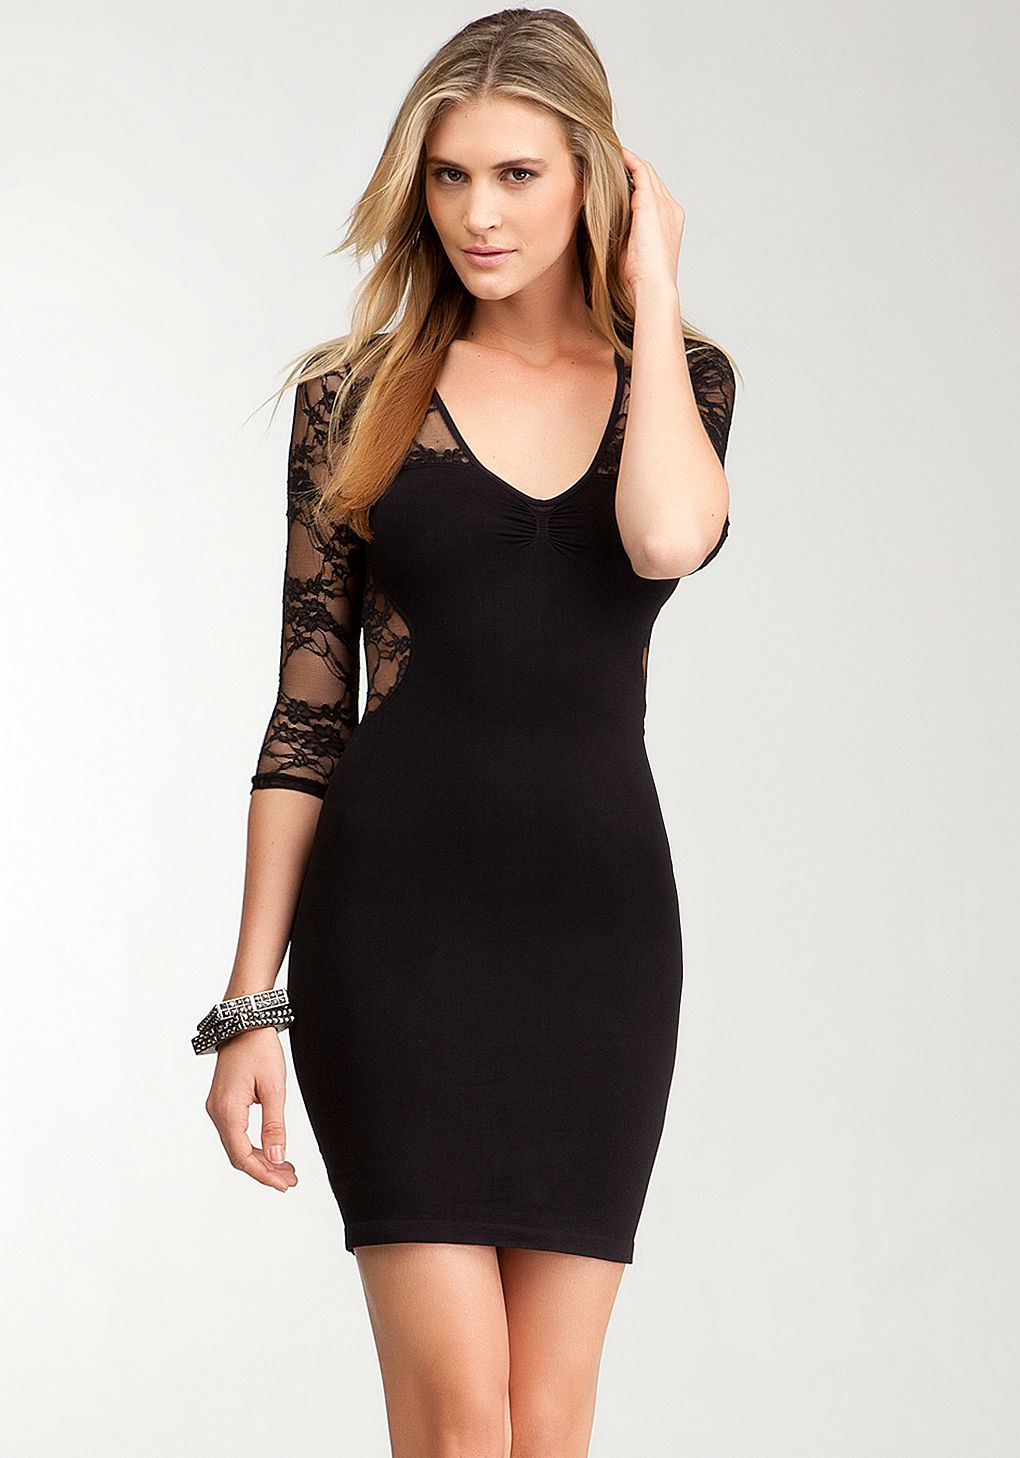 bebe | Lace Inset 3/4 Sleeve Bodycon Dress - ONLINE EXCLUSIVE - View ...